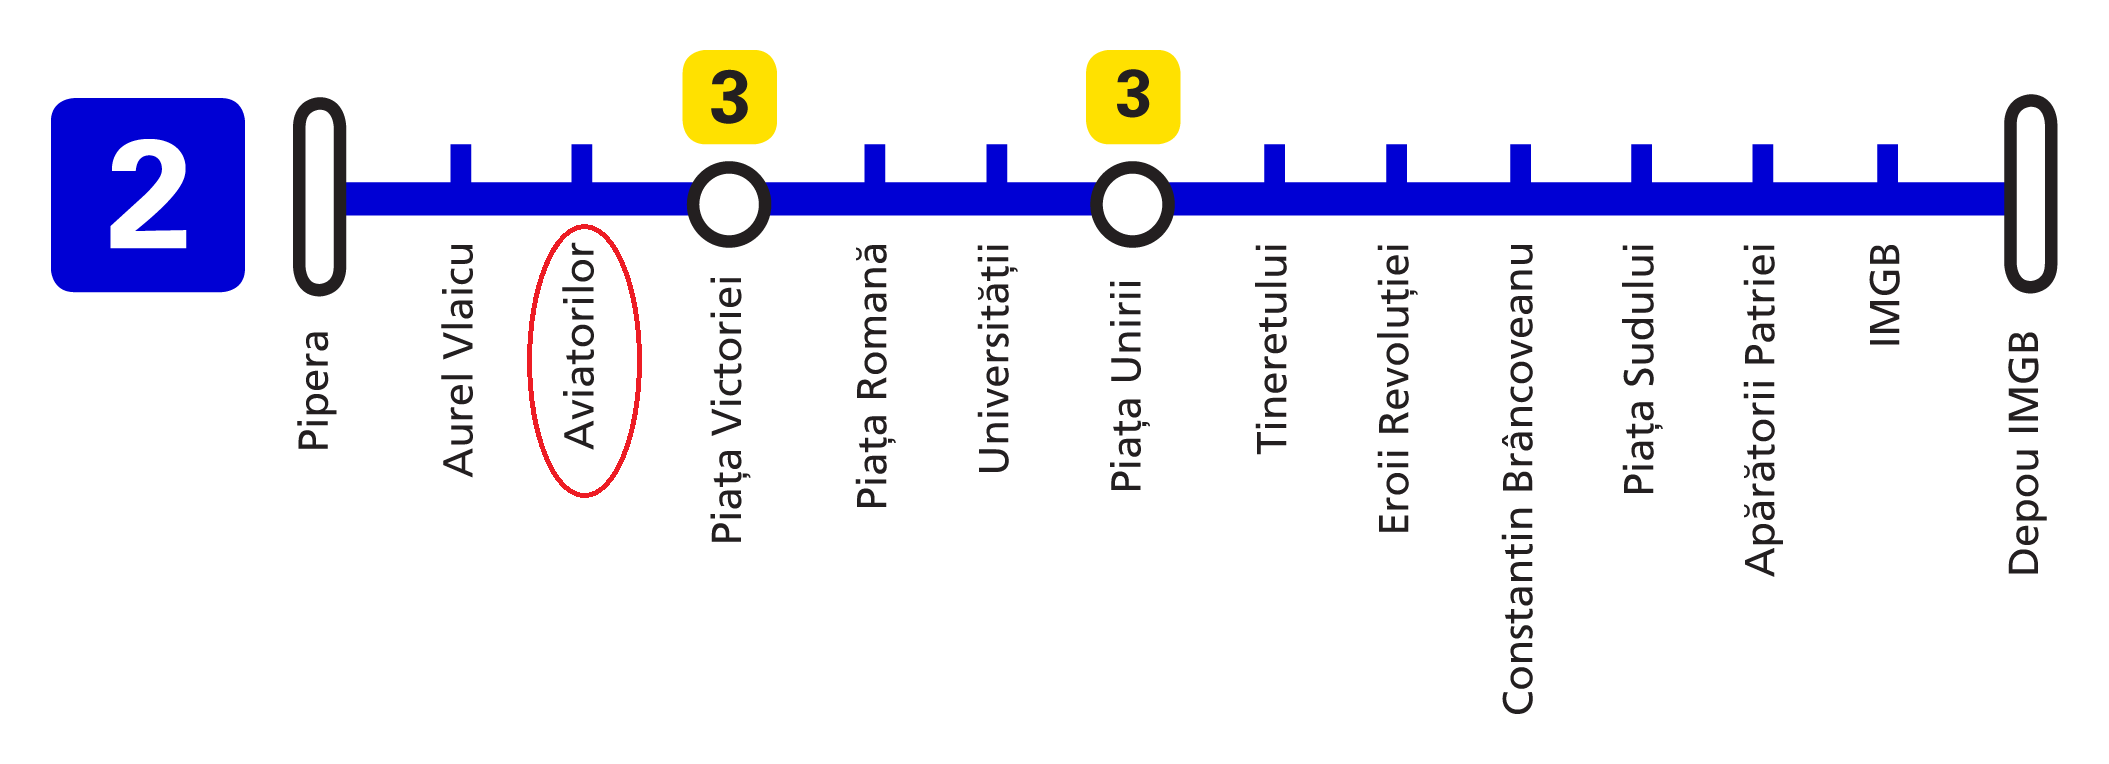 Bucharest_Metro_Line_2